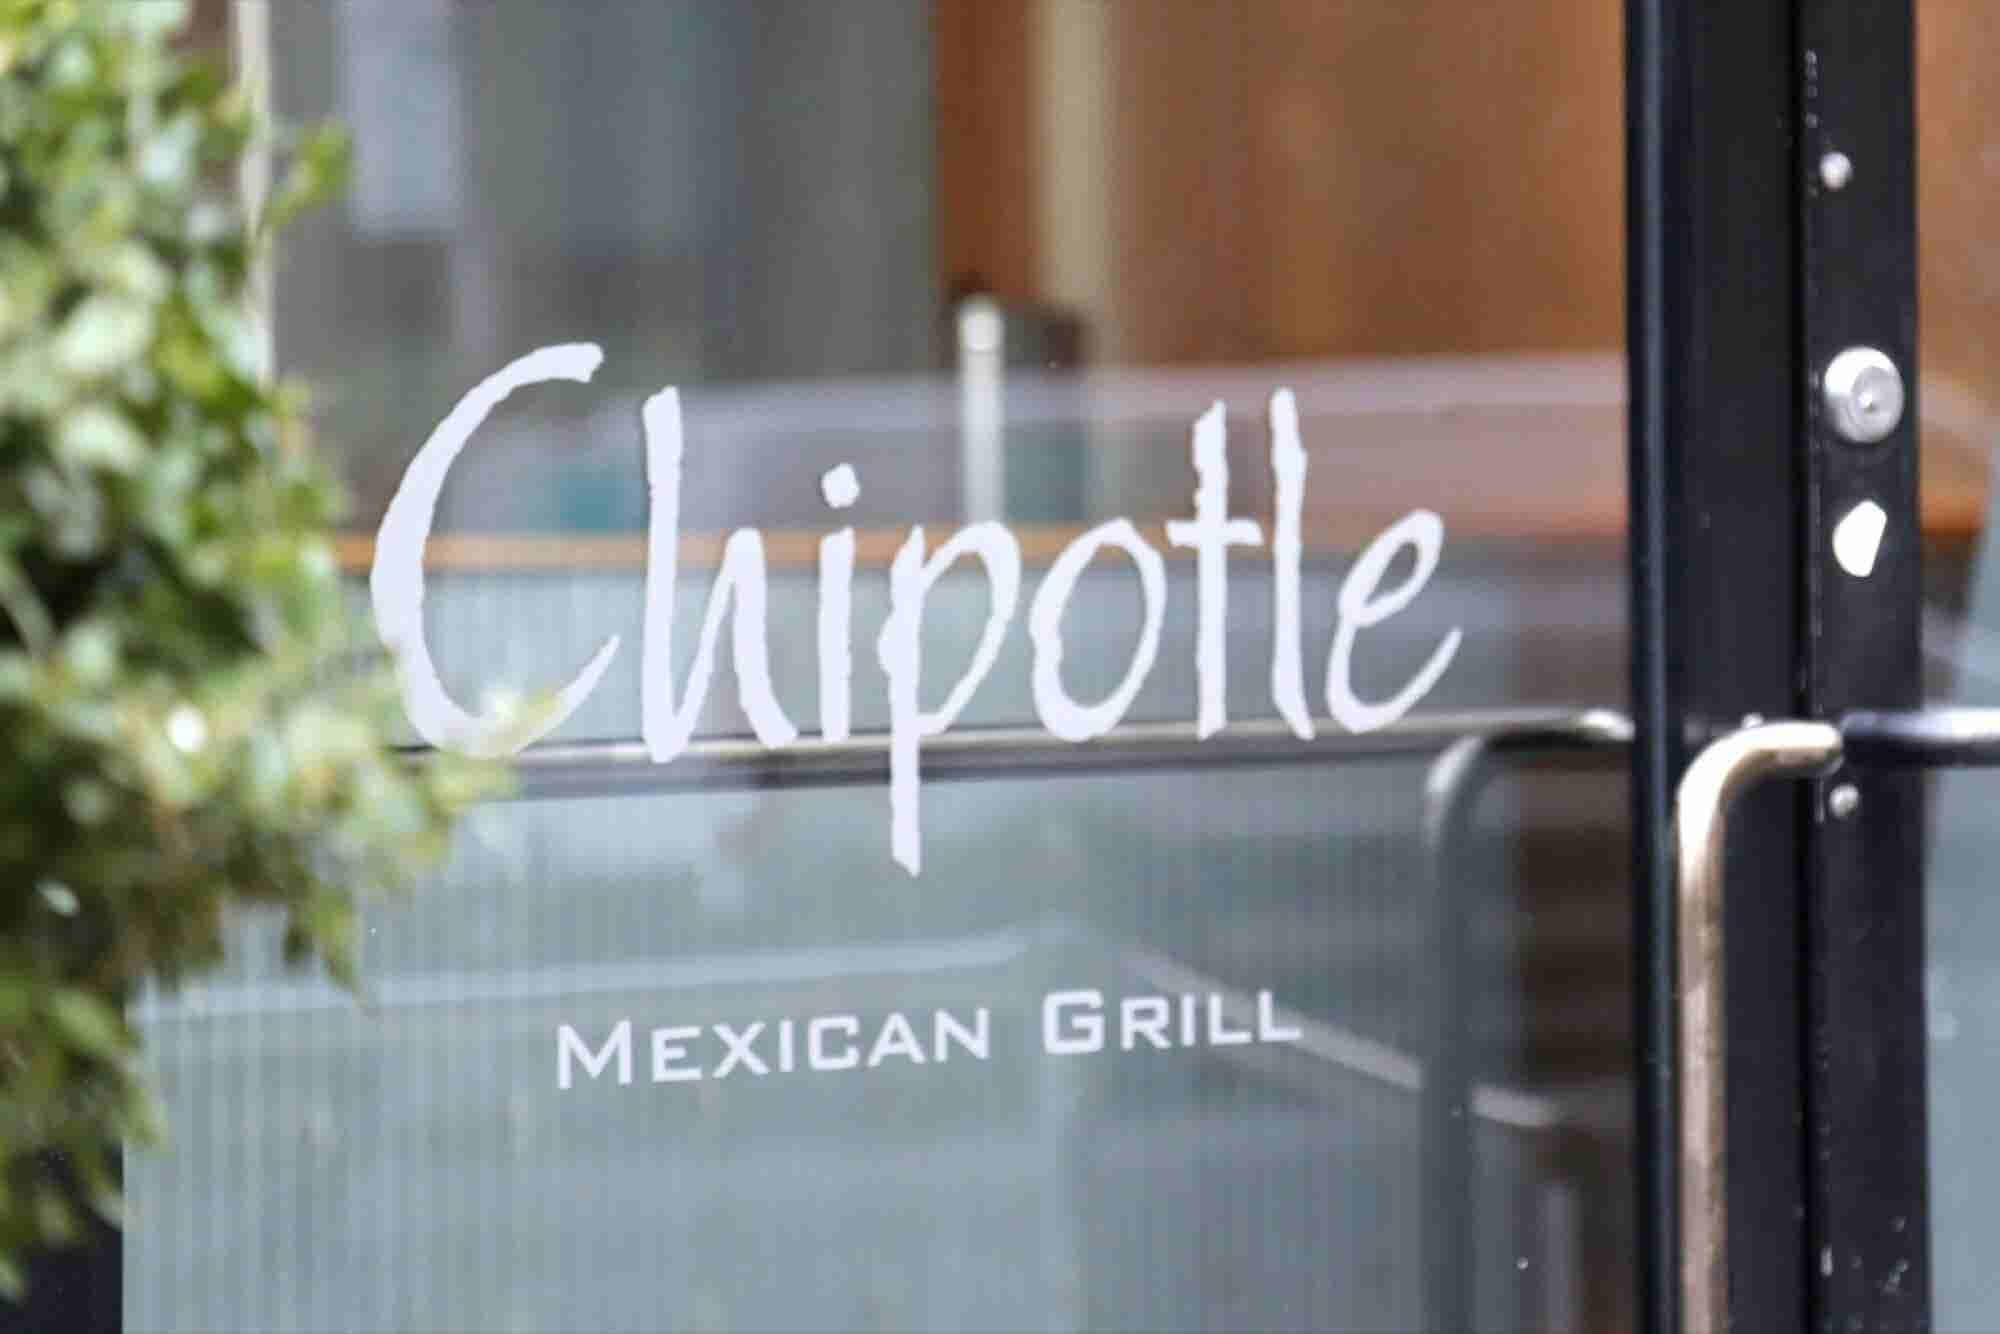 Chipotle to Create Stricter Rules for Produce Suppliers After E. Coli Outbreak